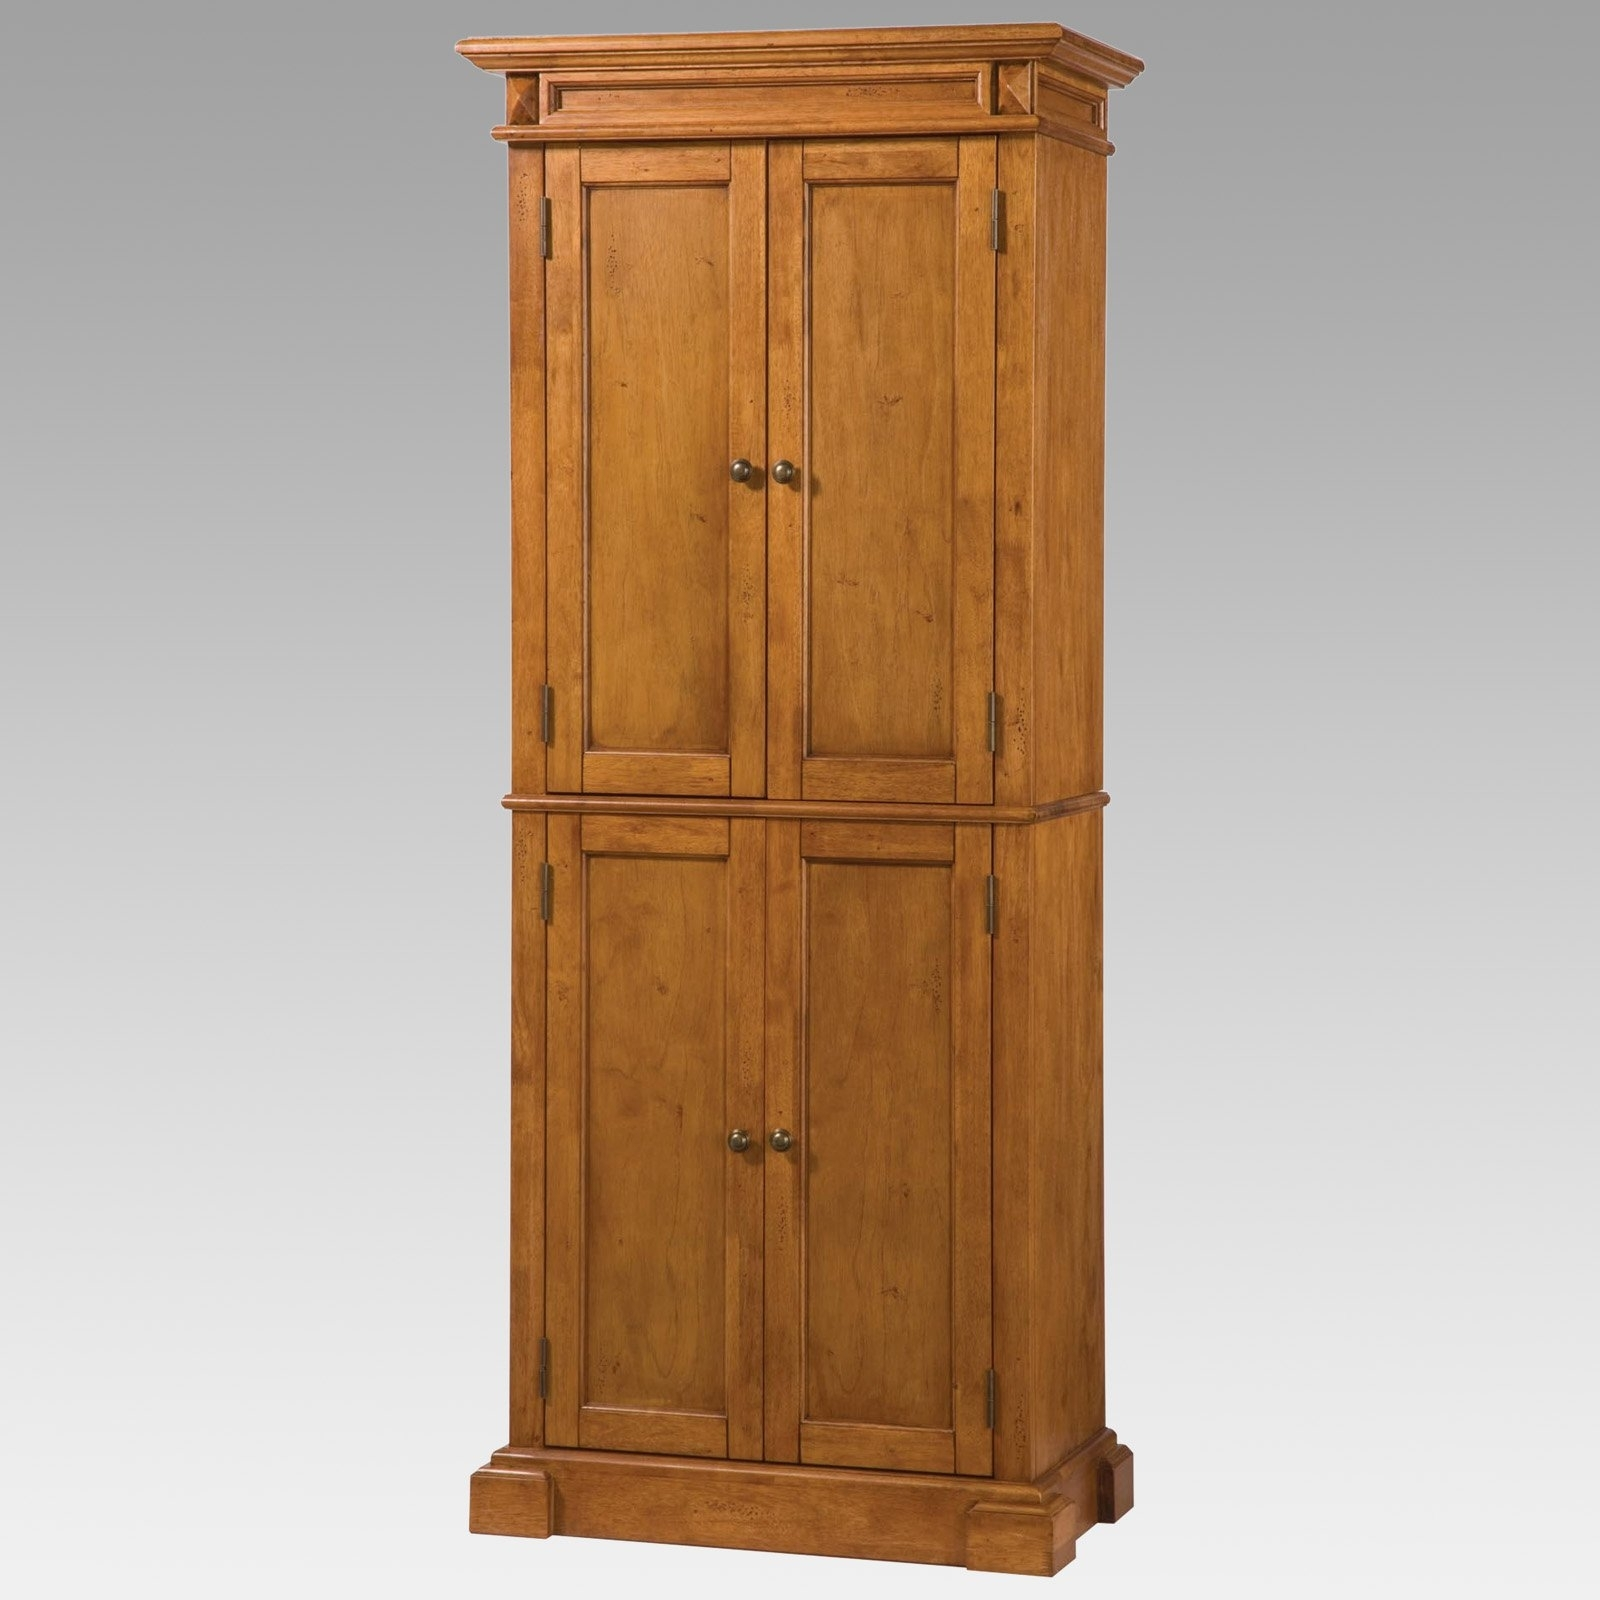 Home Styles Americana Solid Hardwood Cottage Oak Finish Pantry Intended For Pantry Cabinets To Utilize Your Kitchen (View 5 of 17)